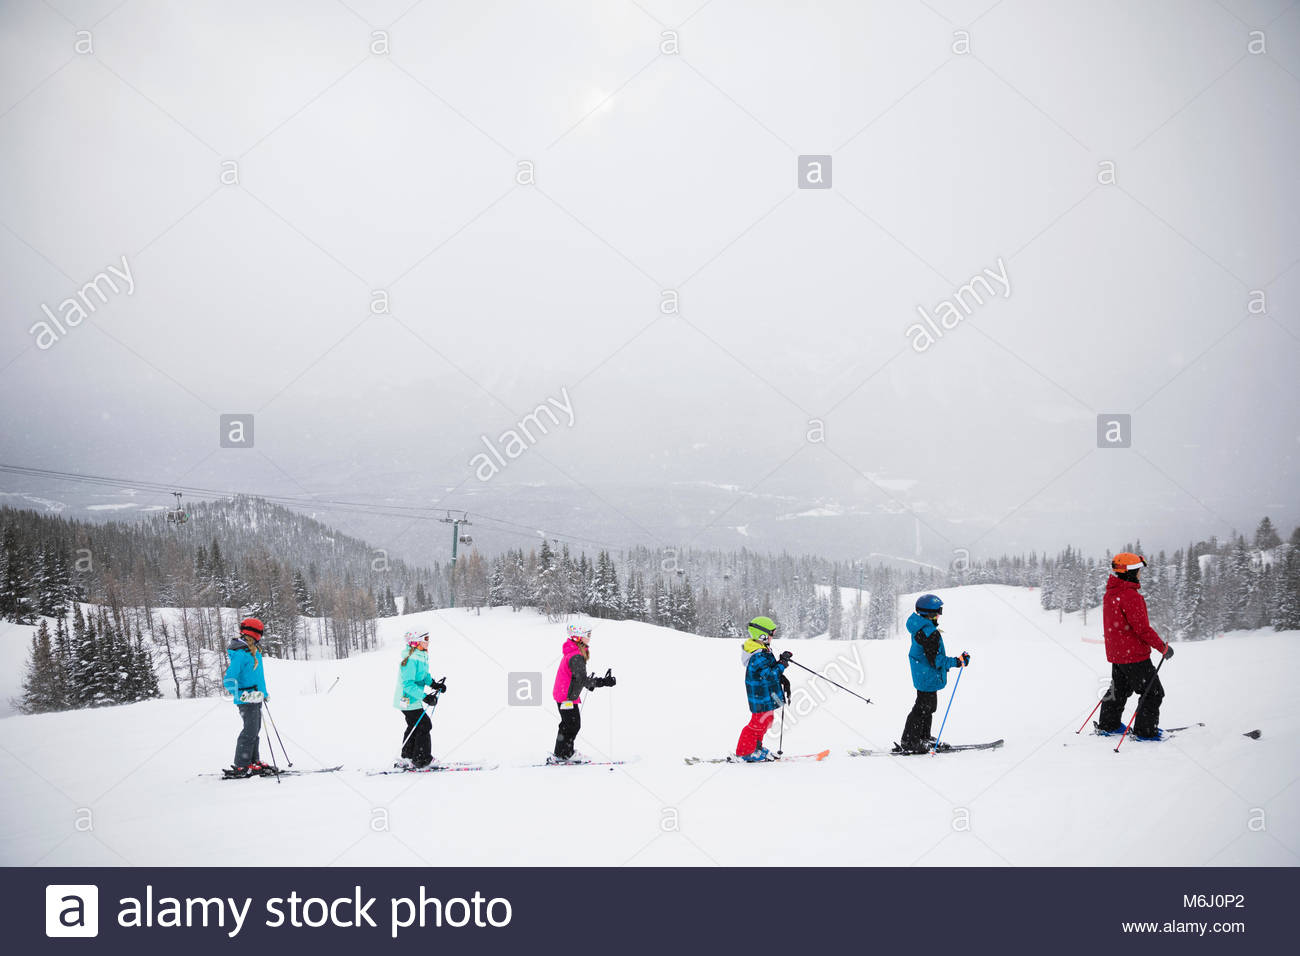 Kids following ski instructor during ski lesson on snowy mountain - Stock Image